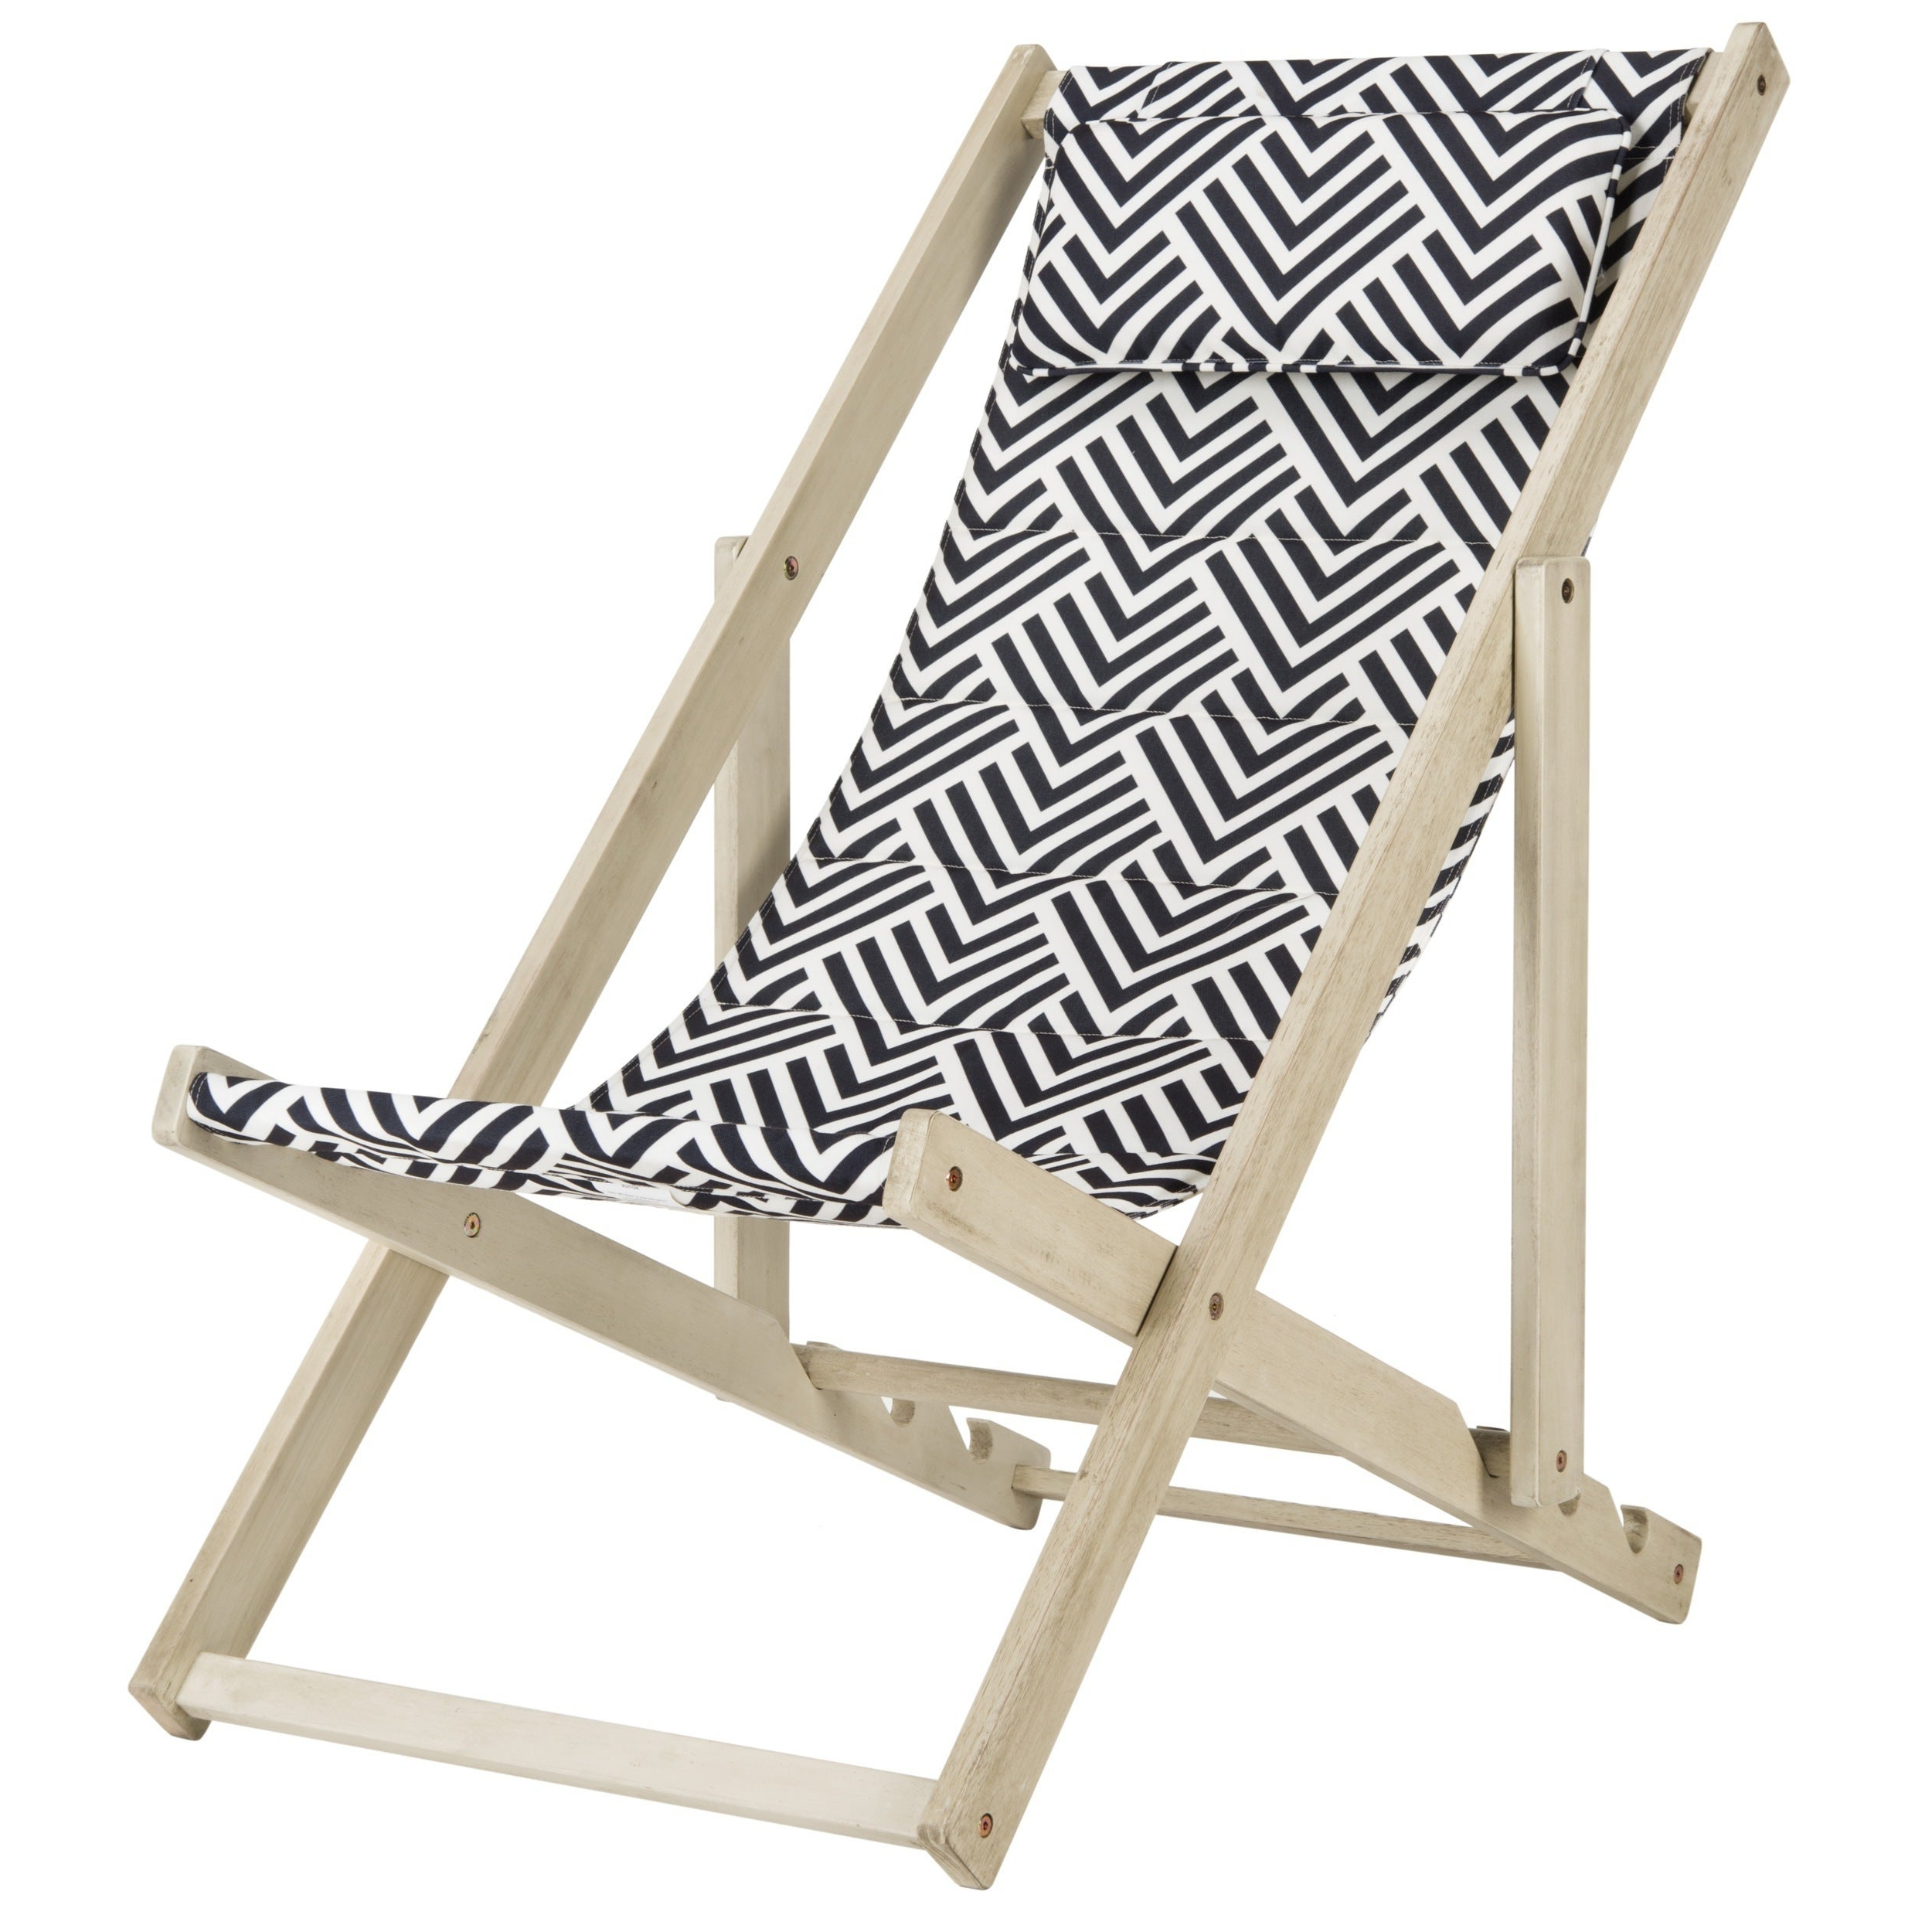 Outdoor Wood Sling Chairs Throughout Preferred Safavieh Outdoor Living Rive White Wash/ Navy Foldable Sling Chair (View 24 of 25)